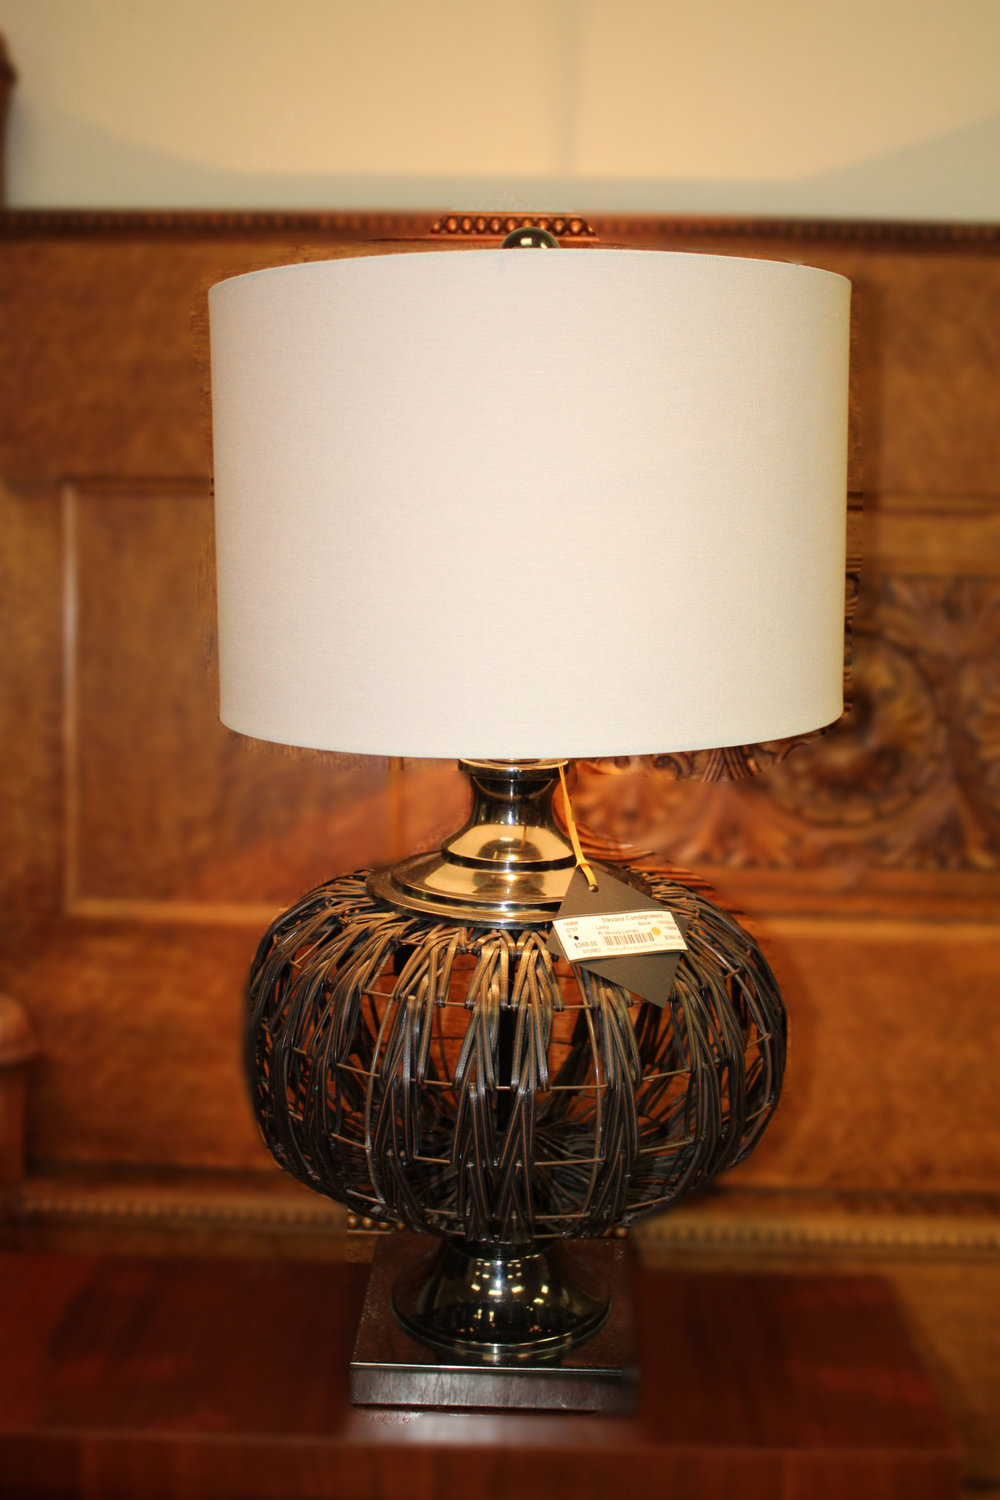 Pair of Woven Lamps